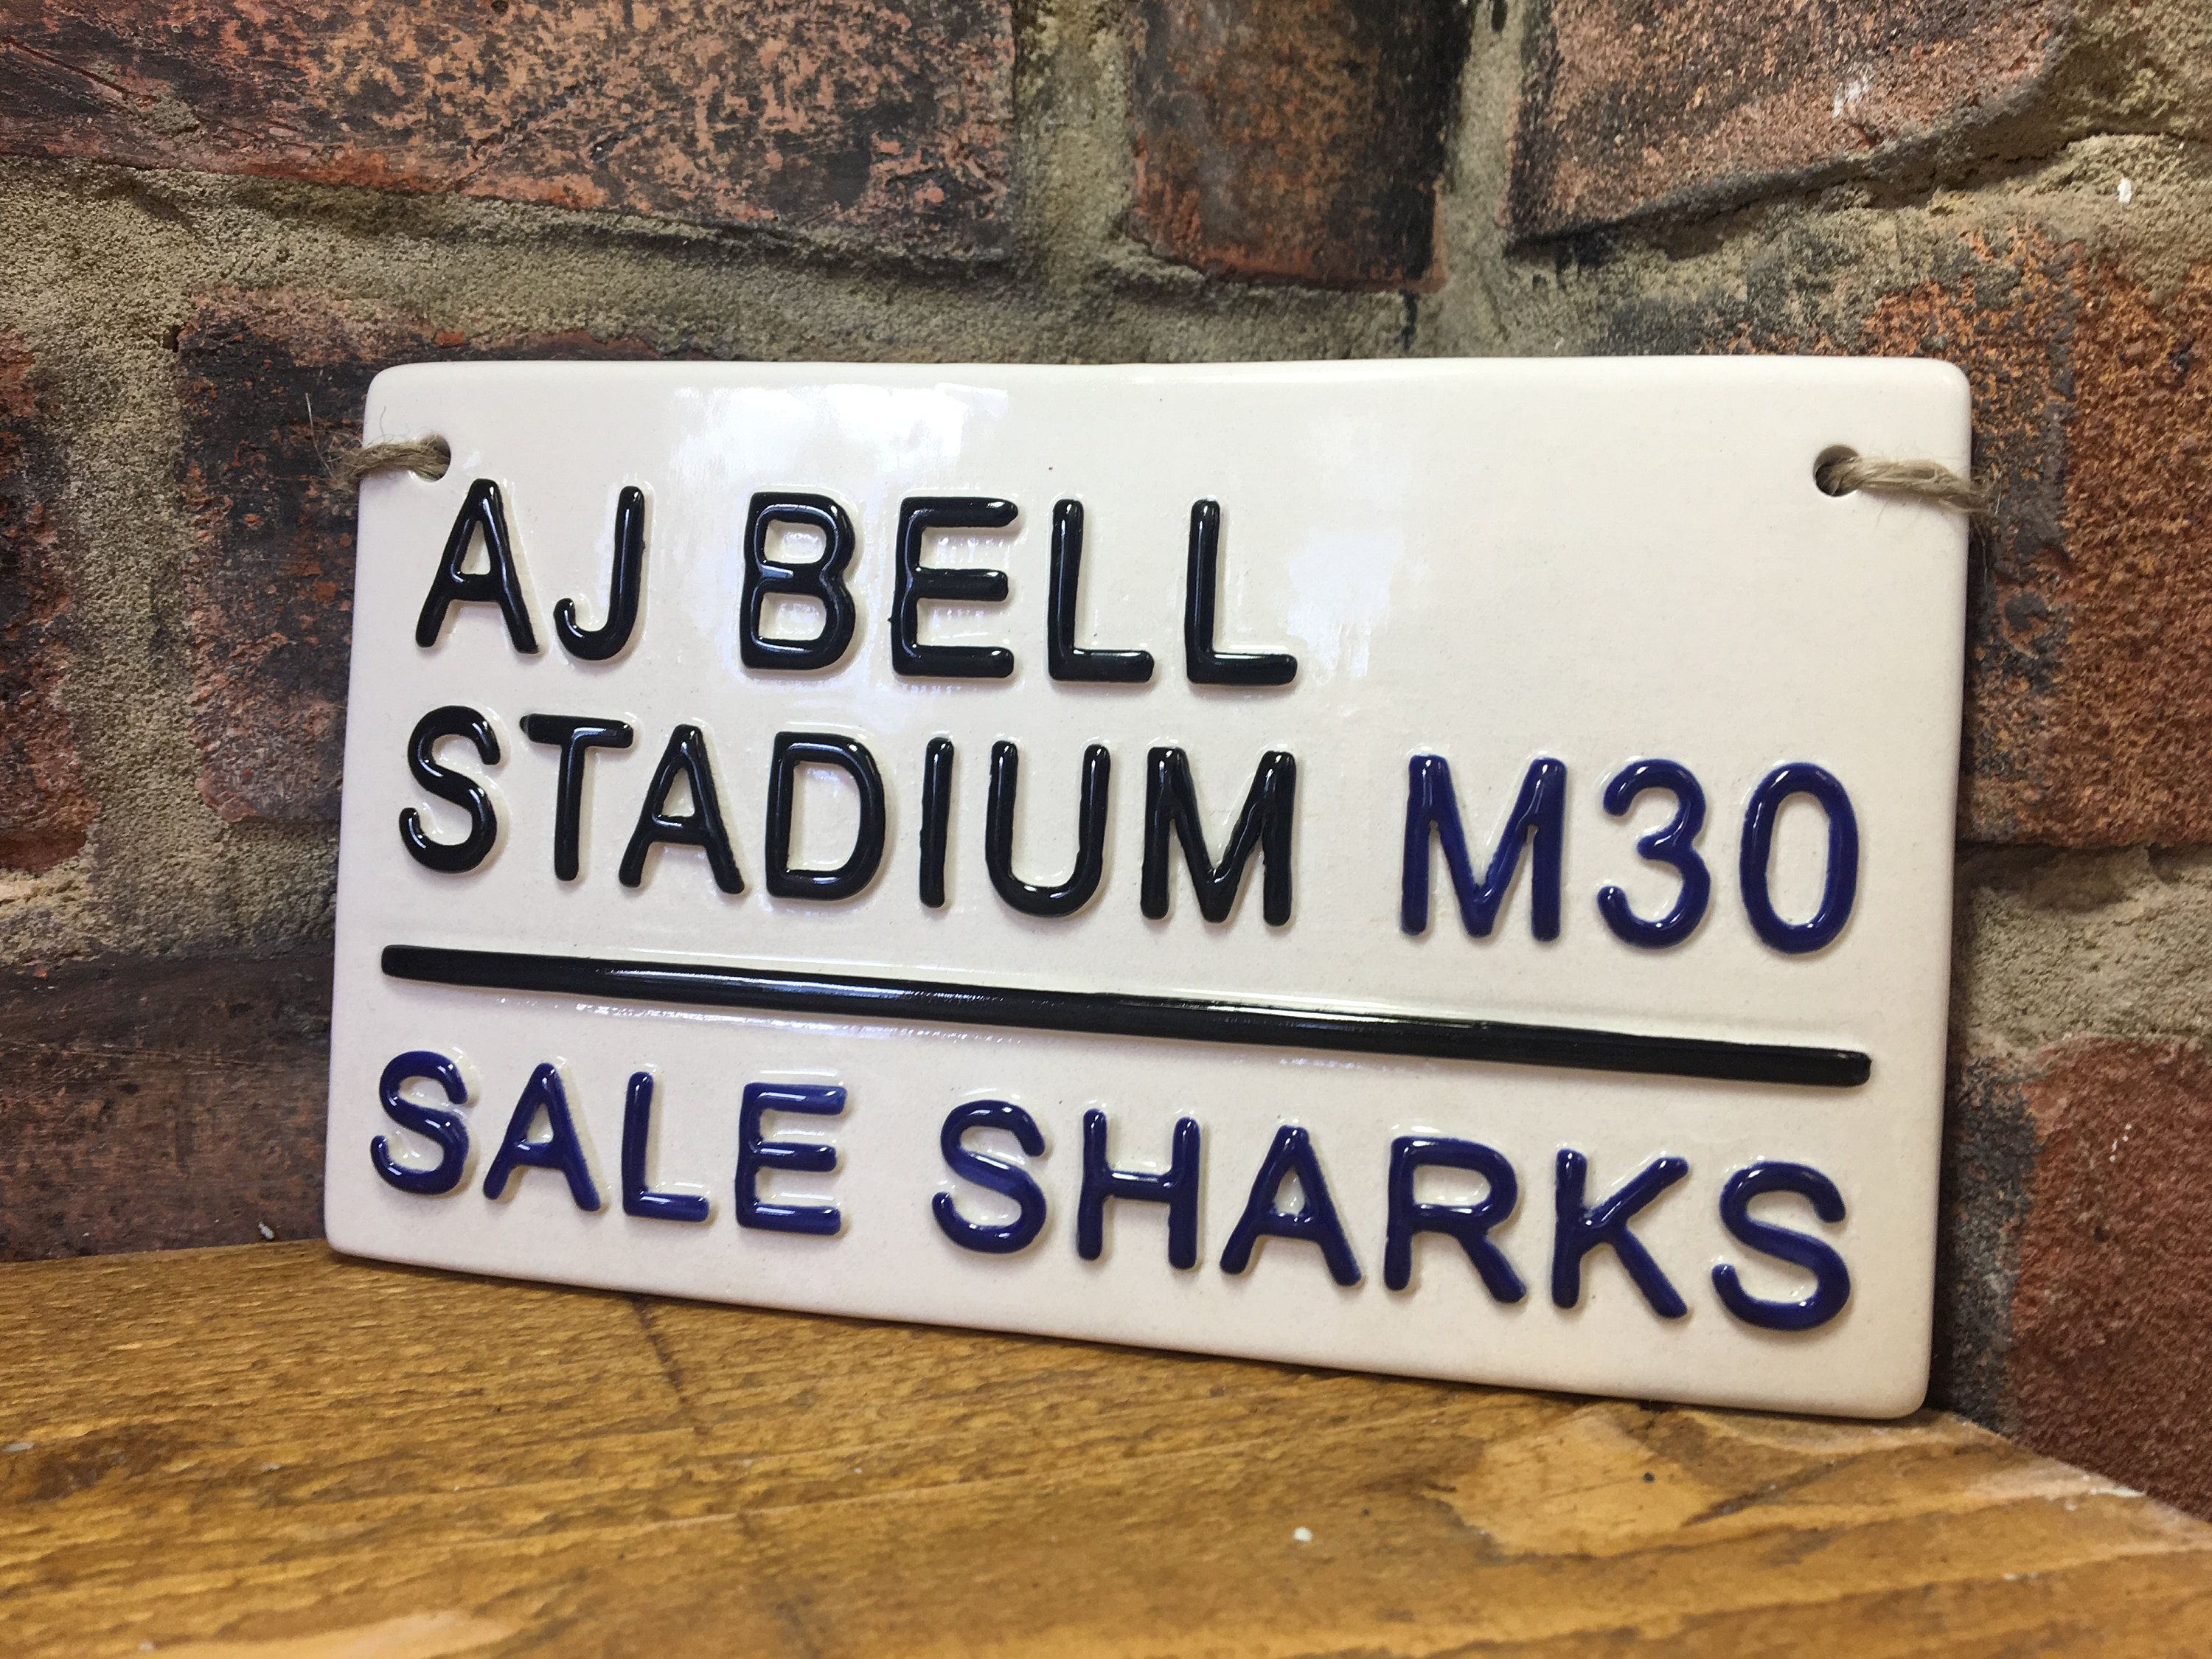 Sharks Aj Bell Stadium Rugby Street Sign Rugby Gift Rugby Union Sports Plaque Fathers Day Gift England Rugby Present Gifts For Him Rugby Gifts Sports Plaque Rugby Union